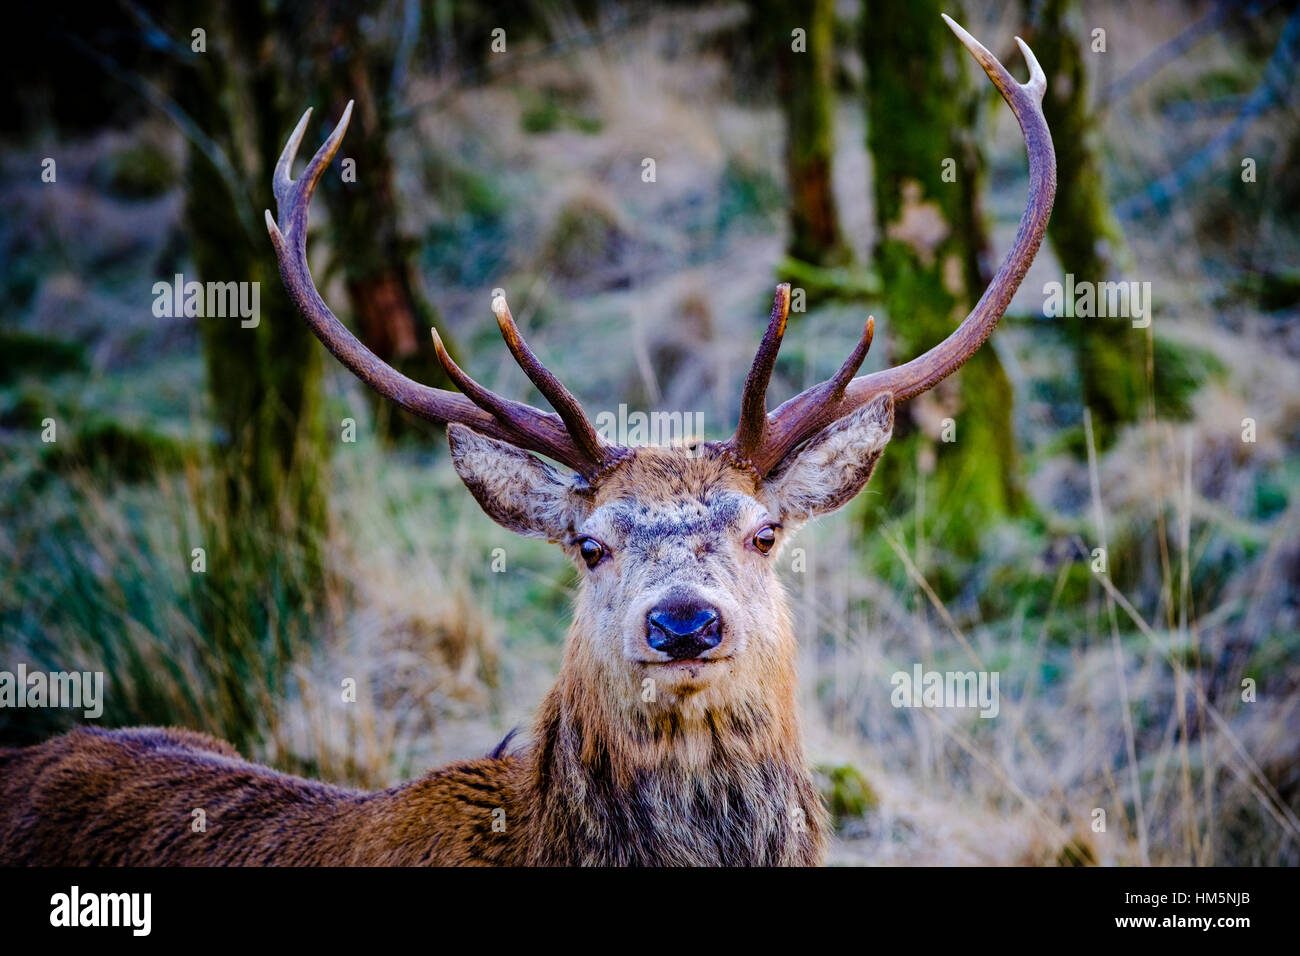 Red Deer cervo a Glen Etive foresta, Highlands della Scozia in inverno Immagini Stock